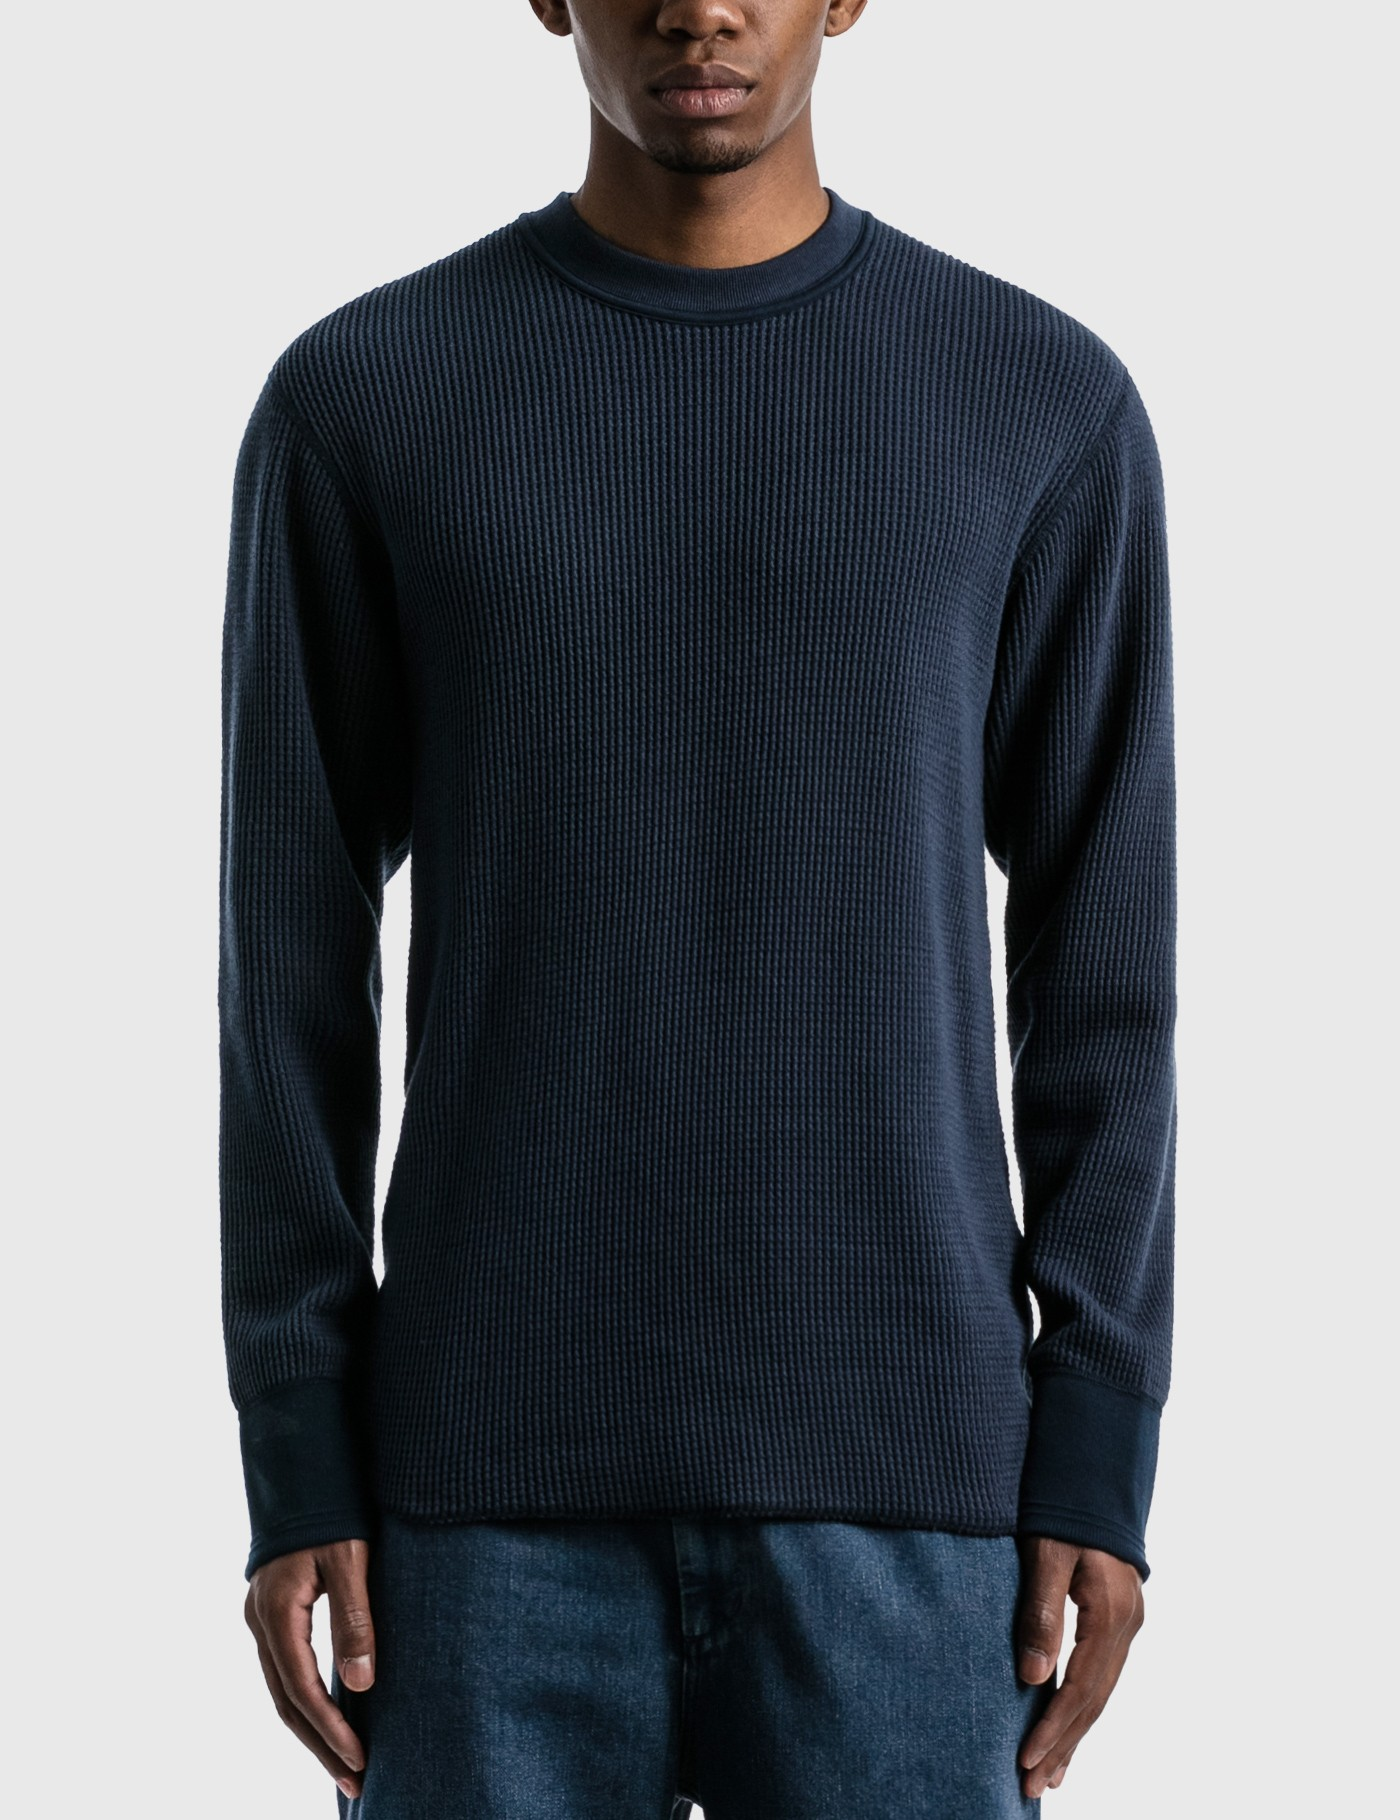 Crew Neck Thermal Long Sleeve T-shirt